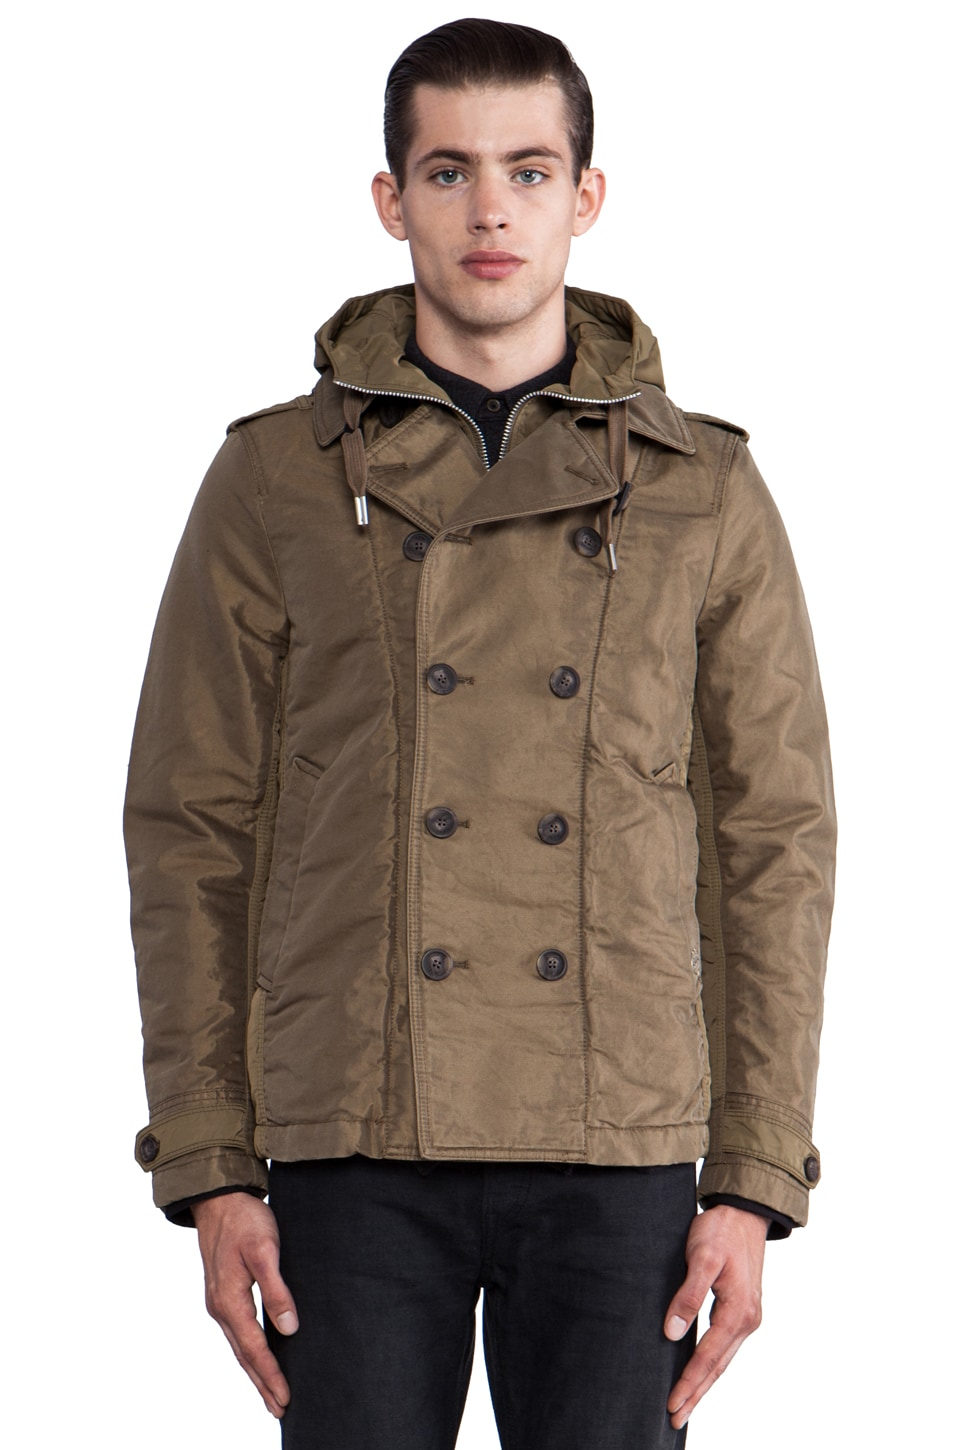 Diesel Watagan Jacket in Olive Green